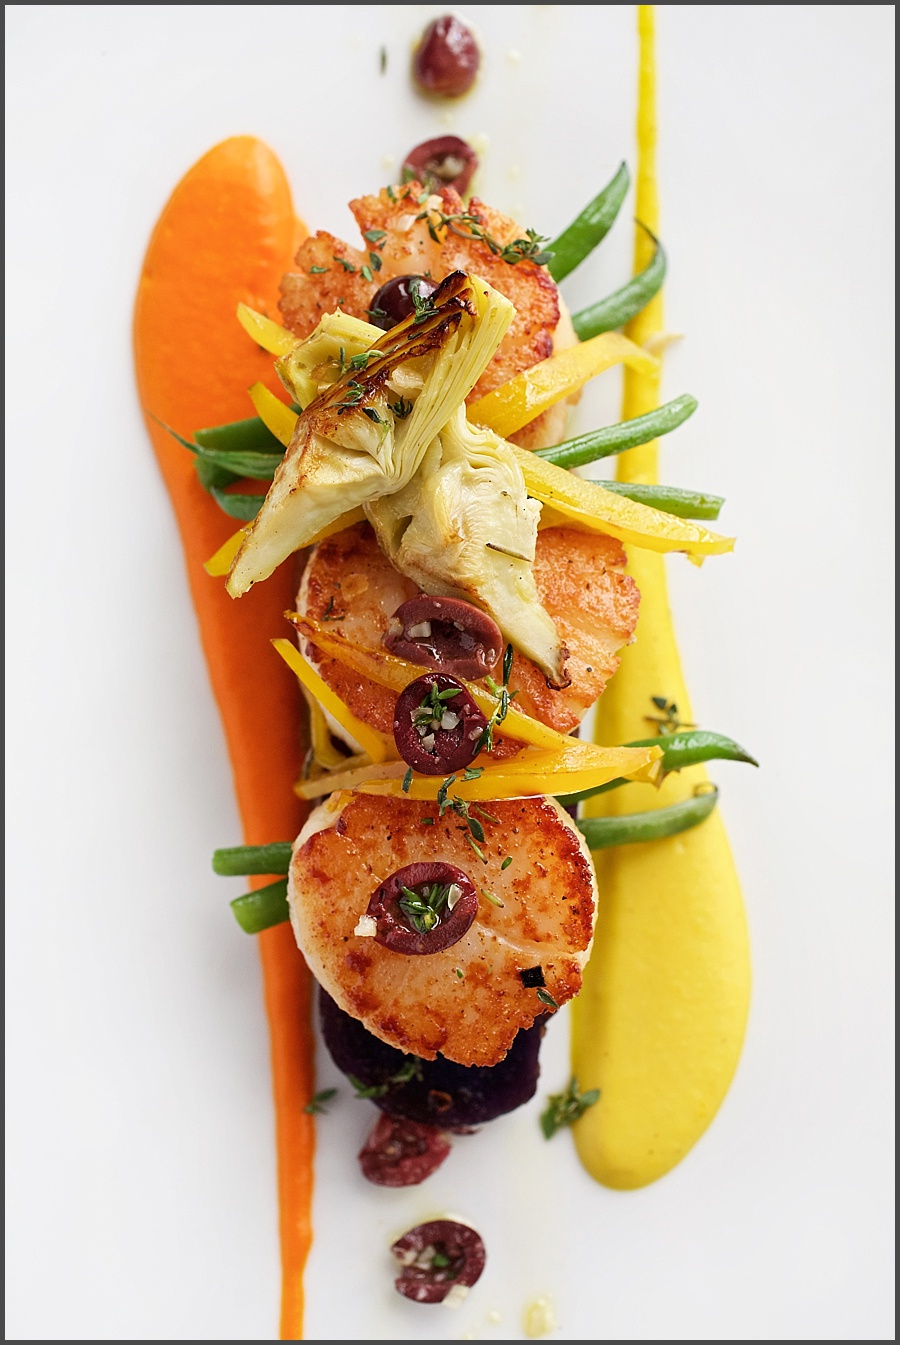 WASHINGTON, DC - Pan Seared Diver Scallops, Roasted Red and Yellow Pepper Coulis with Roasted Artichoke, Haricot Vert and Nicoisse Olives at Marcel